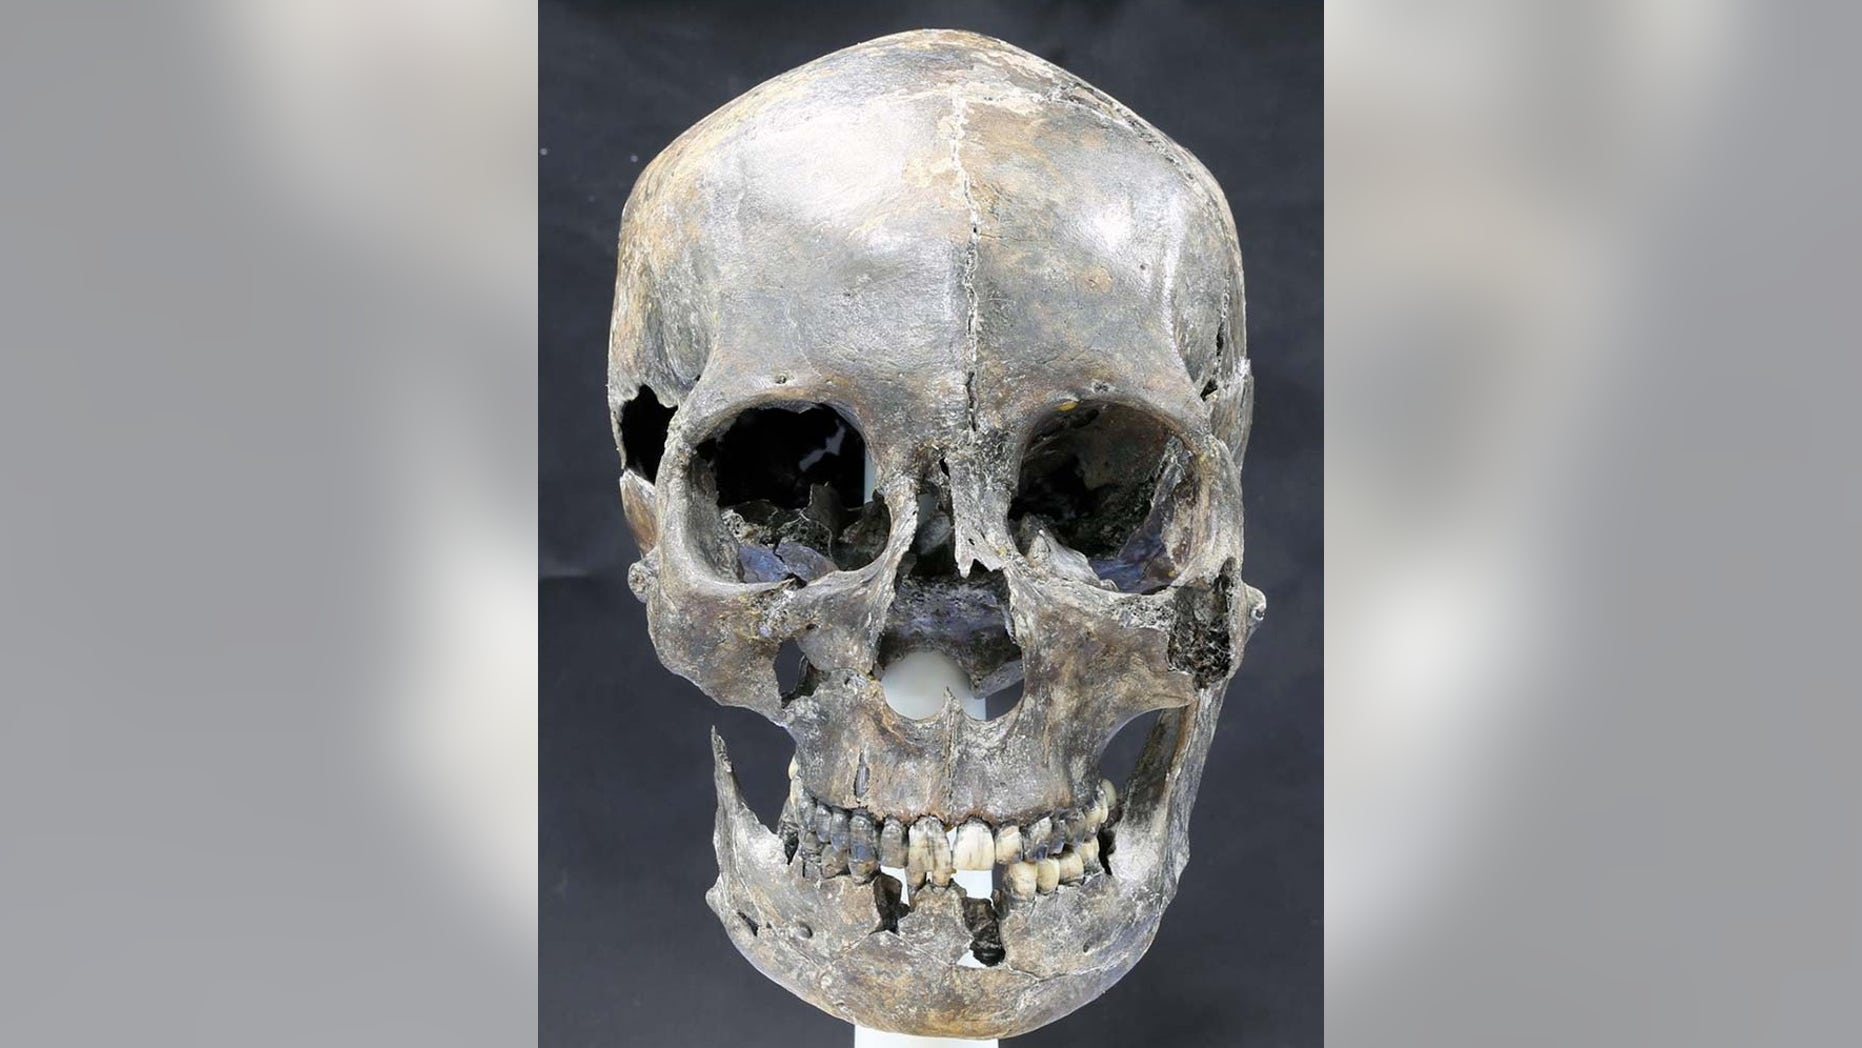 The 1,500-year-old skull (shown here after reconstruction) of a woman, who was part of an ancient royal dynasty called the Silla culture, shows she had an elongated head.